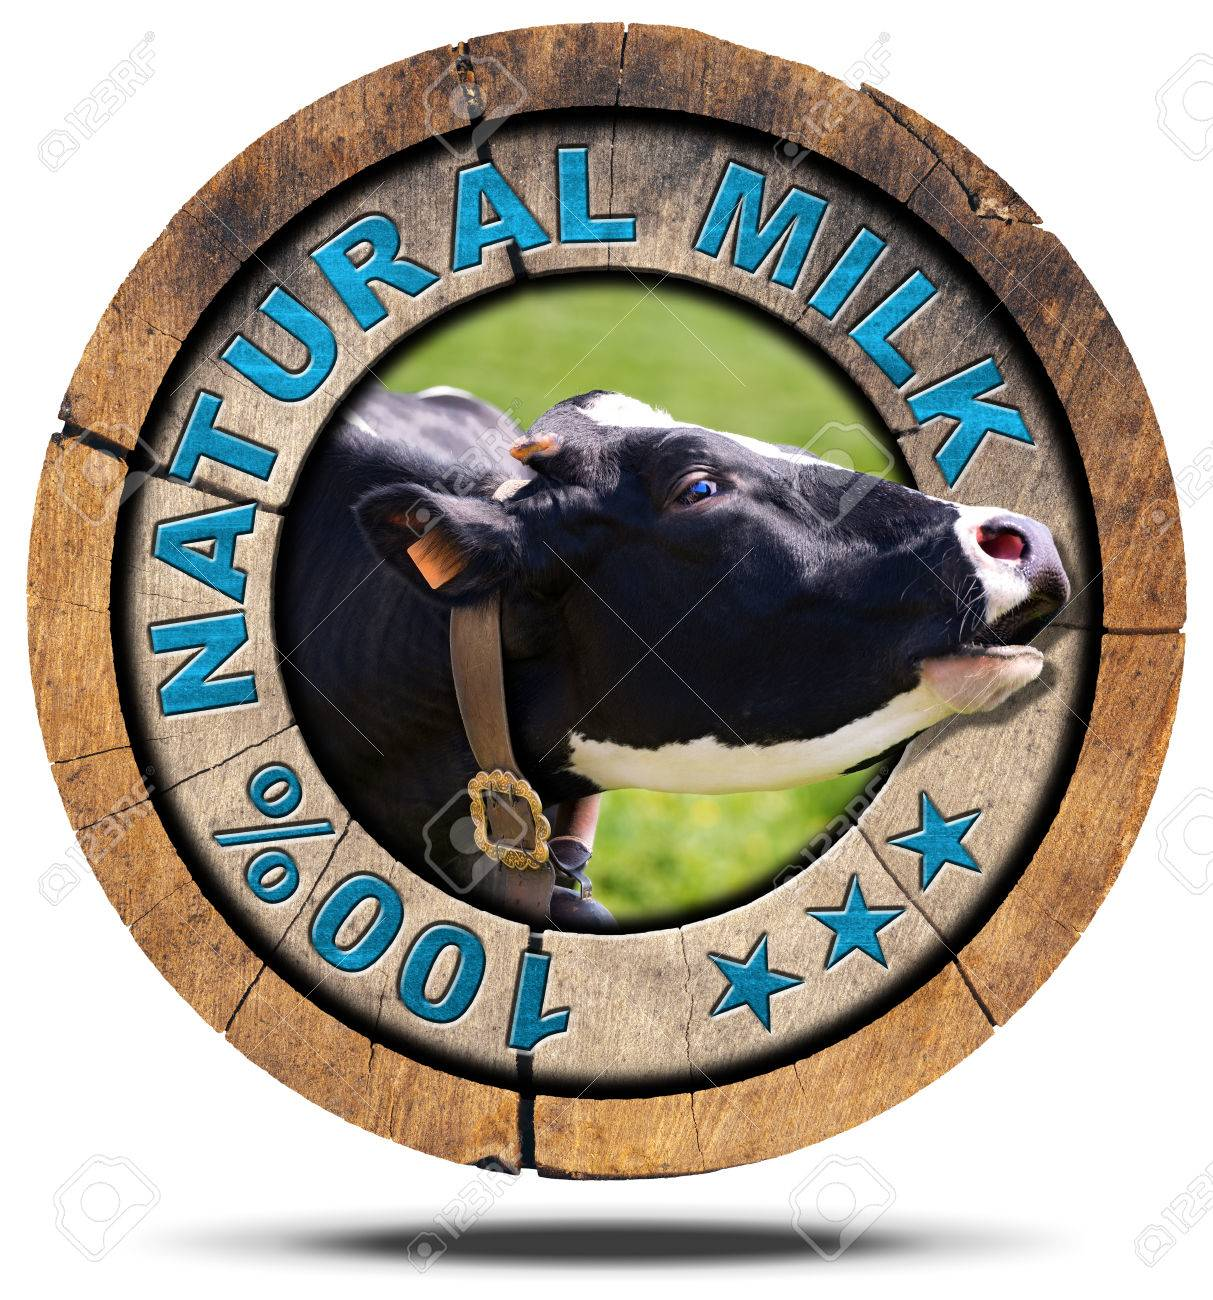 Wooden round icon or symbol with head of cow and text 100 wooden round icon or symbol with head of cow and text 100 natural milk buycottarizona